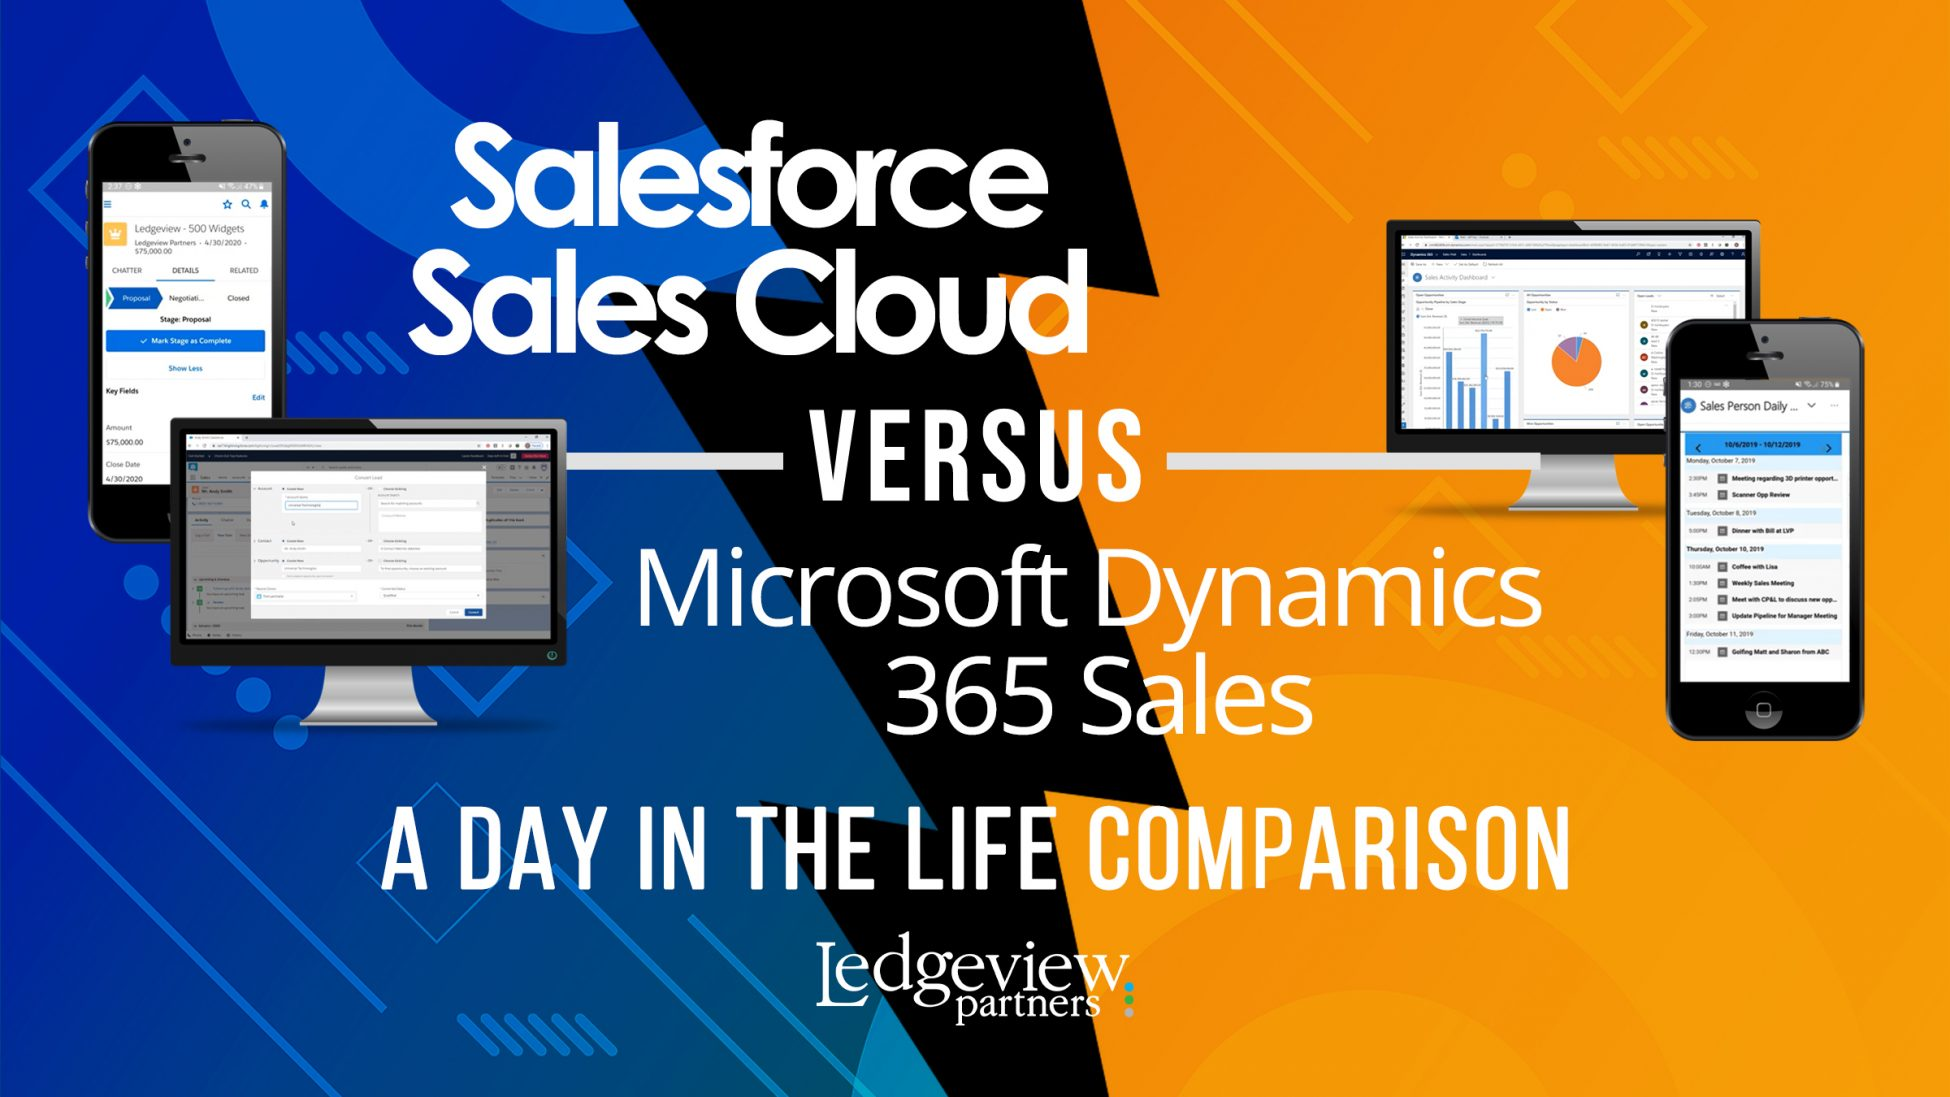 Salesforce Sales Cloud vs. Microsoft Dynamics 365 Sales: A Day in the Life Comparison